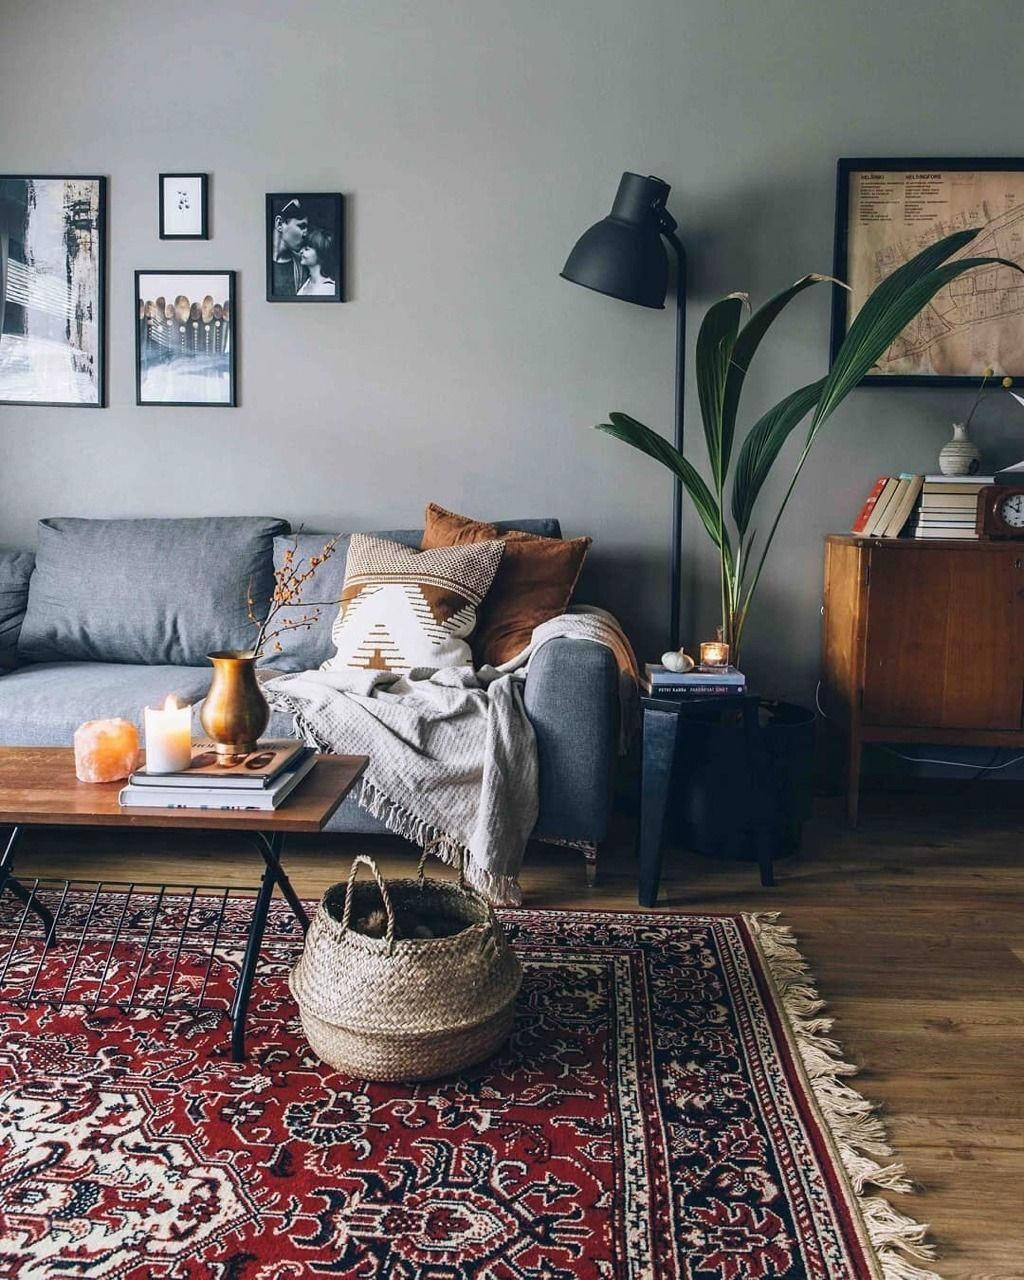 Home inspiration essi espinosa my living interior design is the definitive resource for also best apartment images in rh pinterest